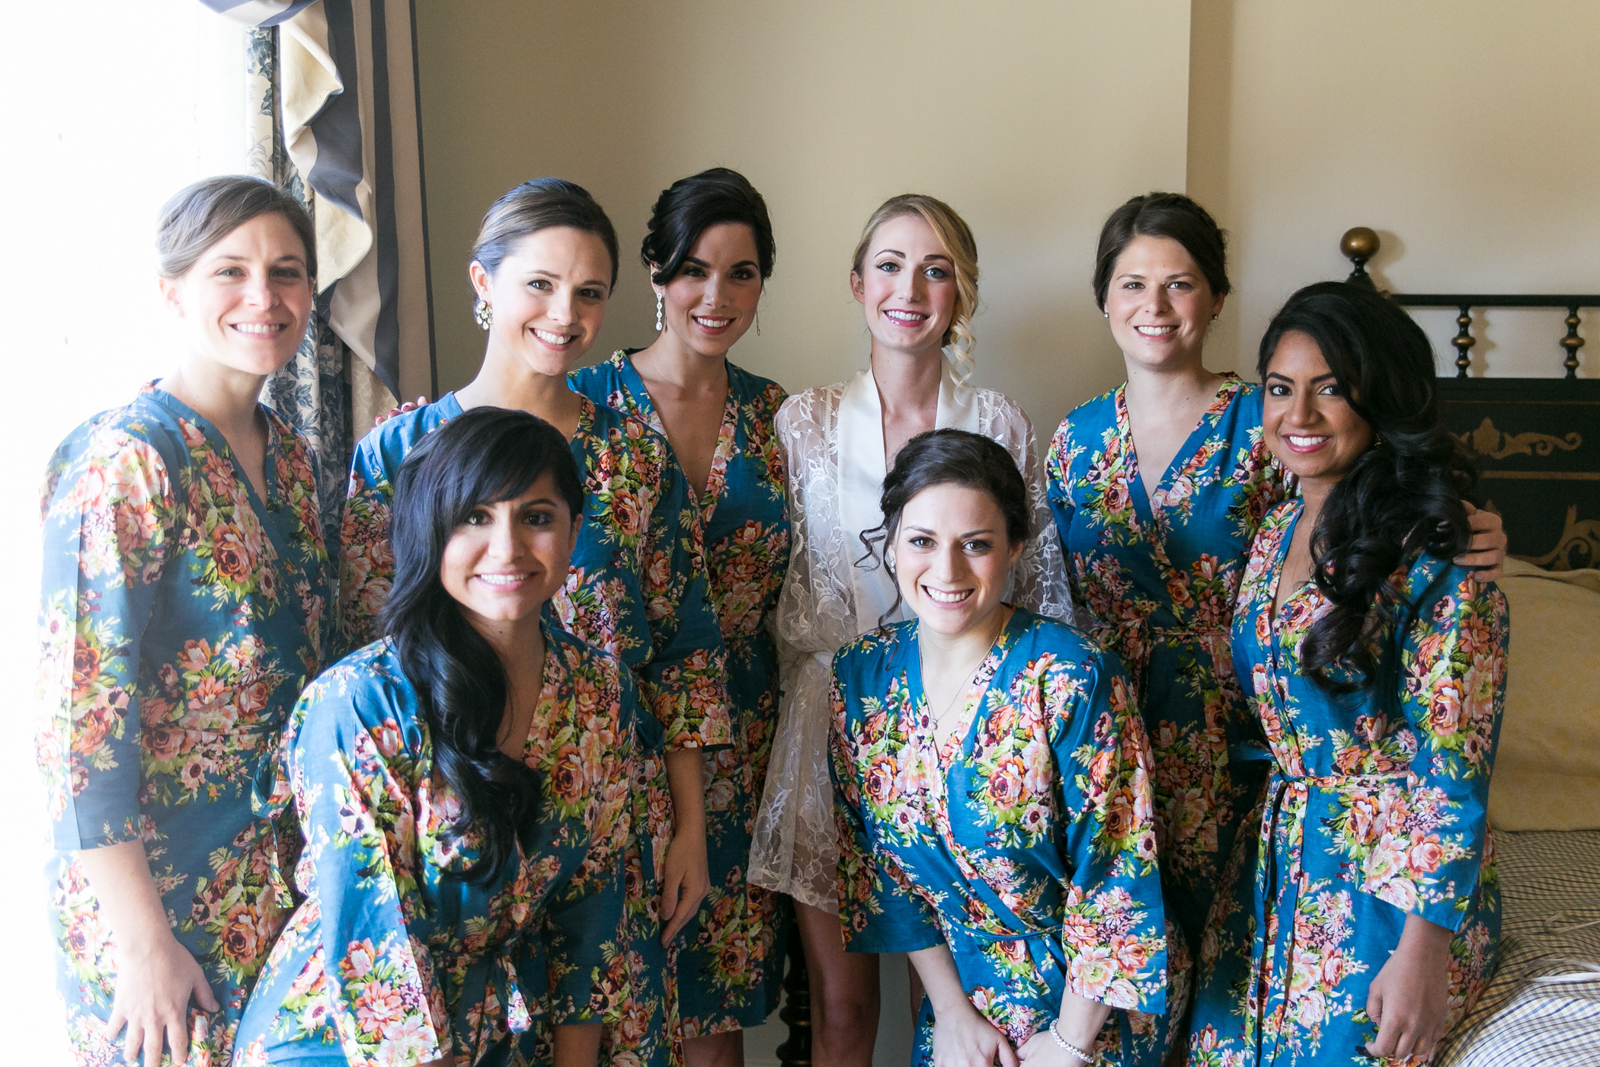 Bridesmaids getting ready photos in blue robes